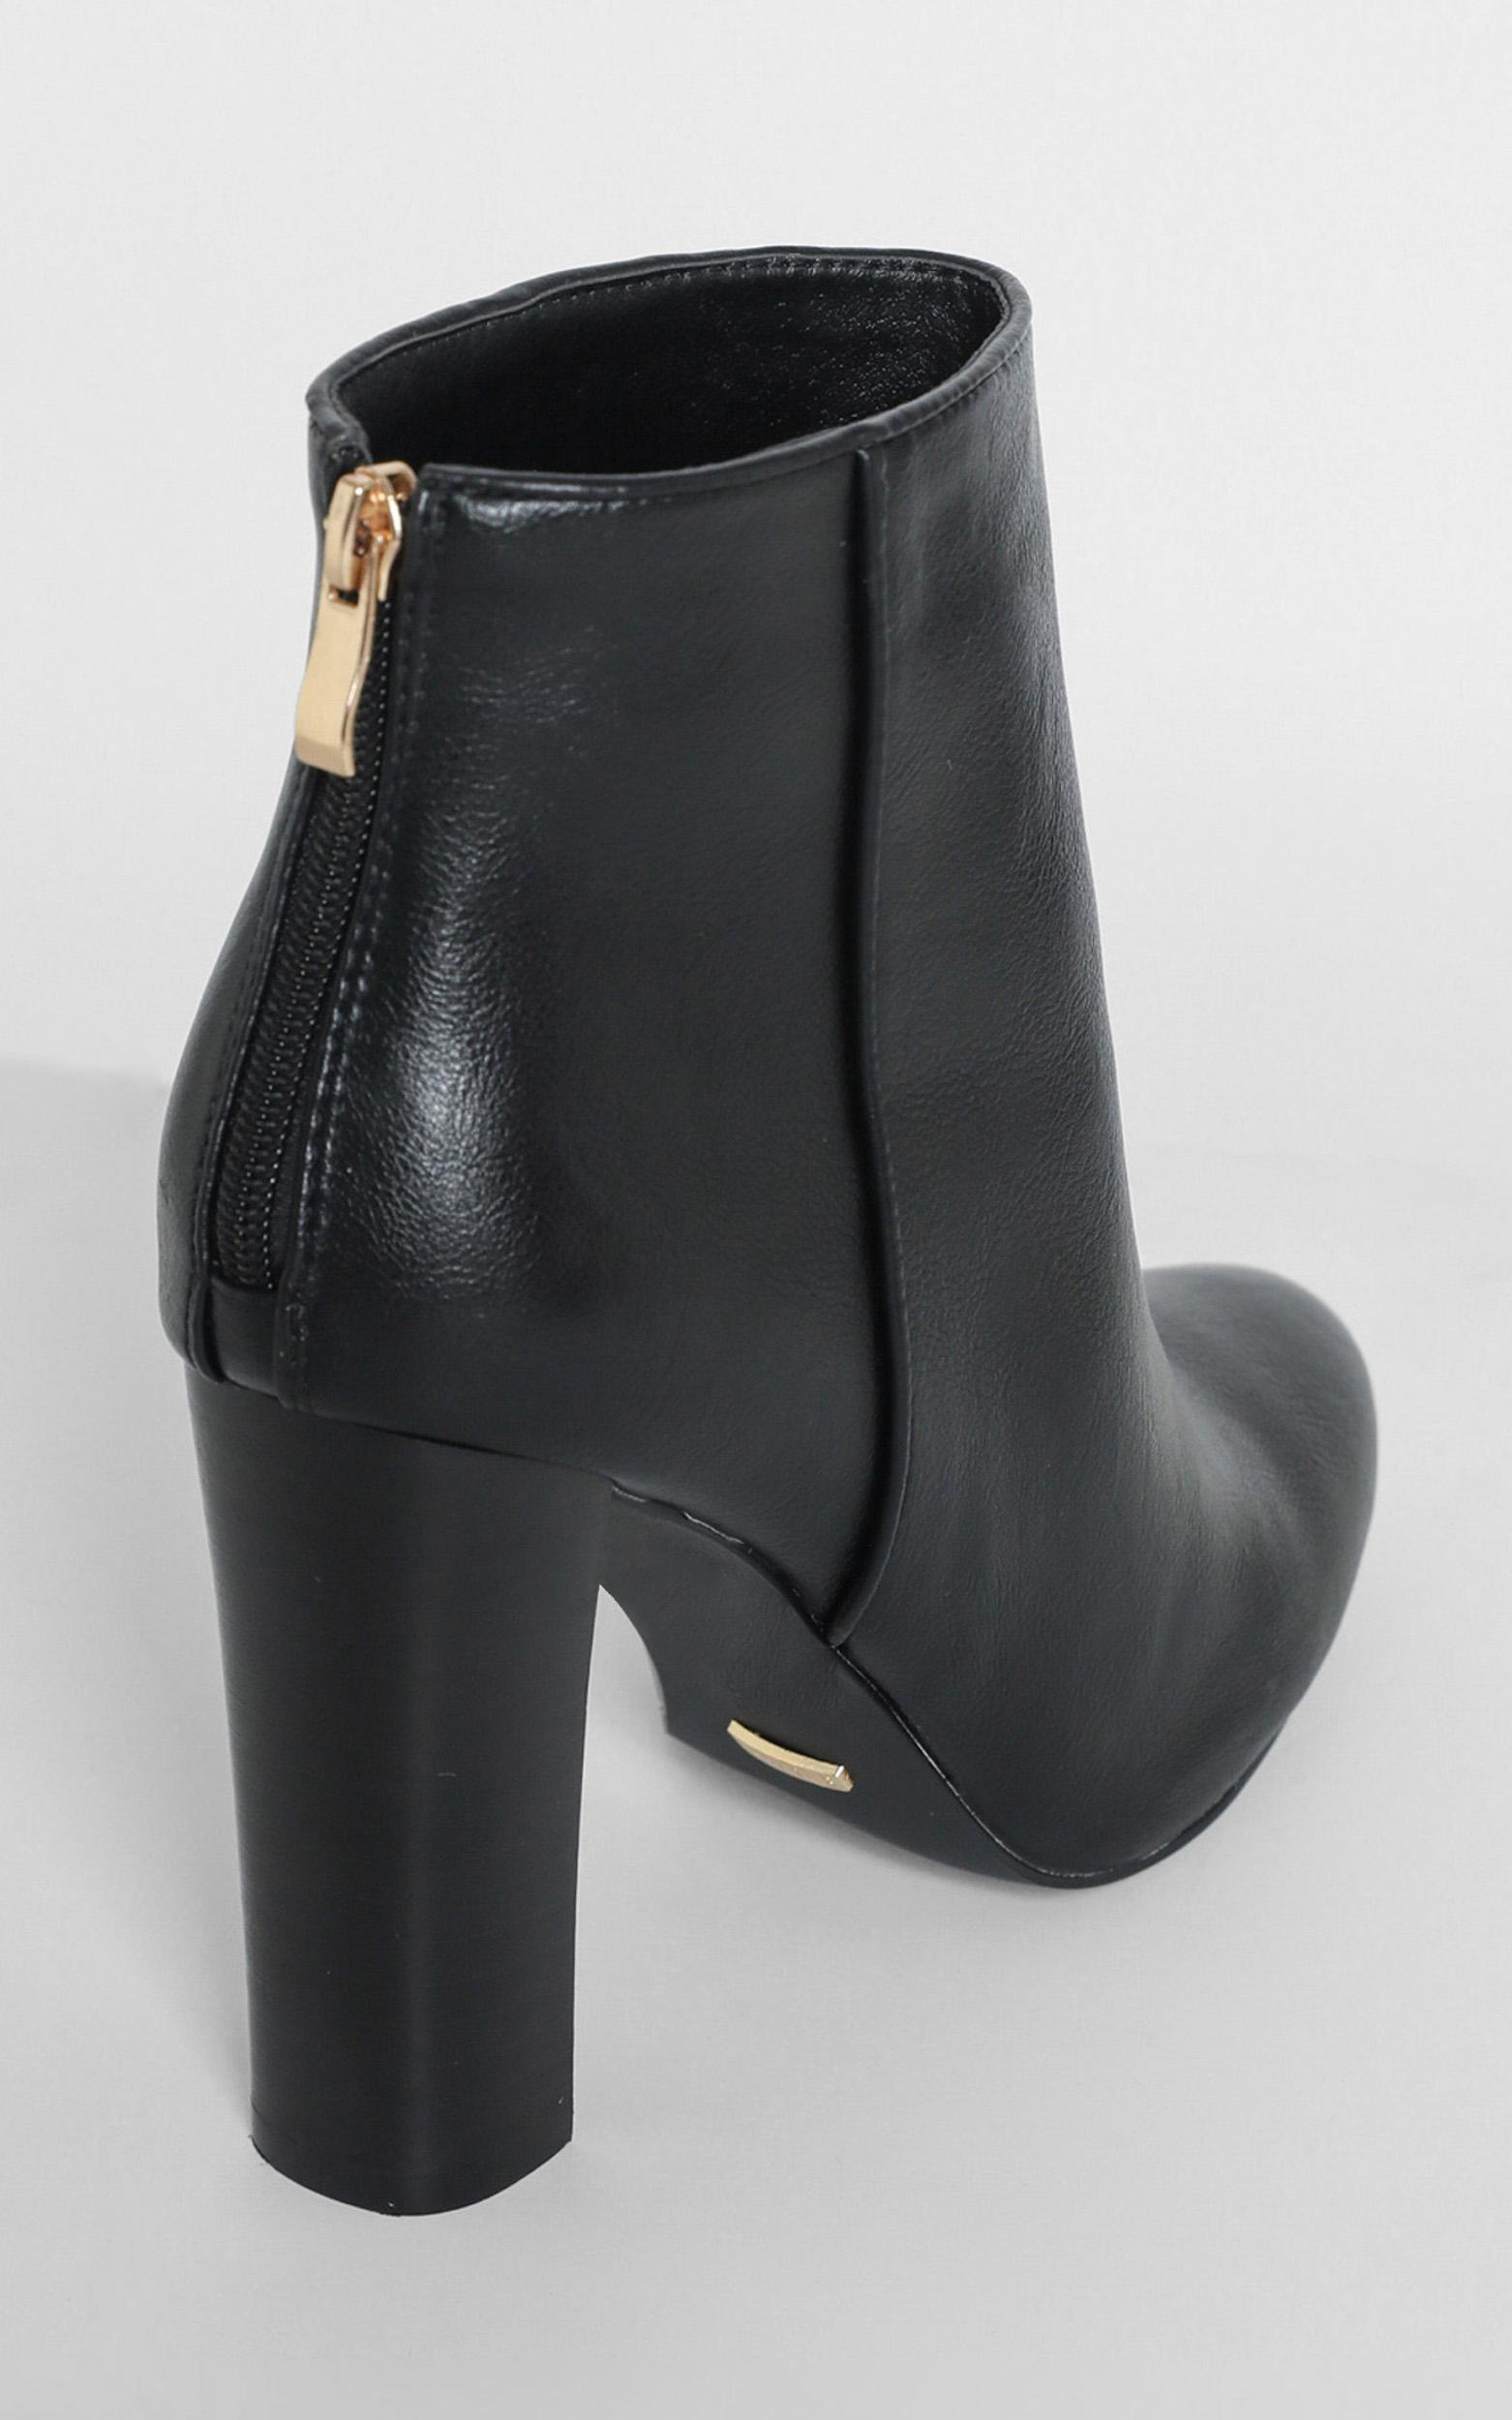 Billini - Pacey Boots in black - 5, Black, hi-res image number null